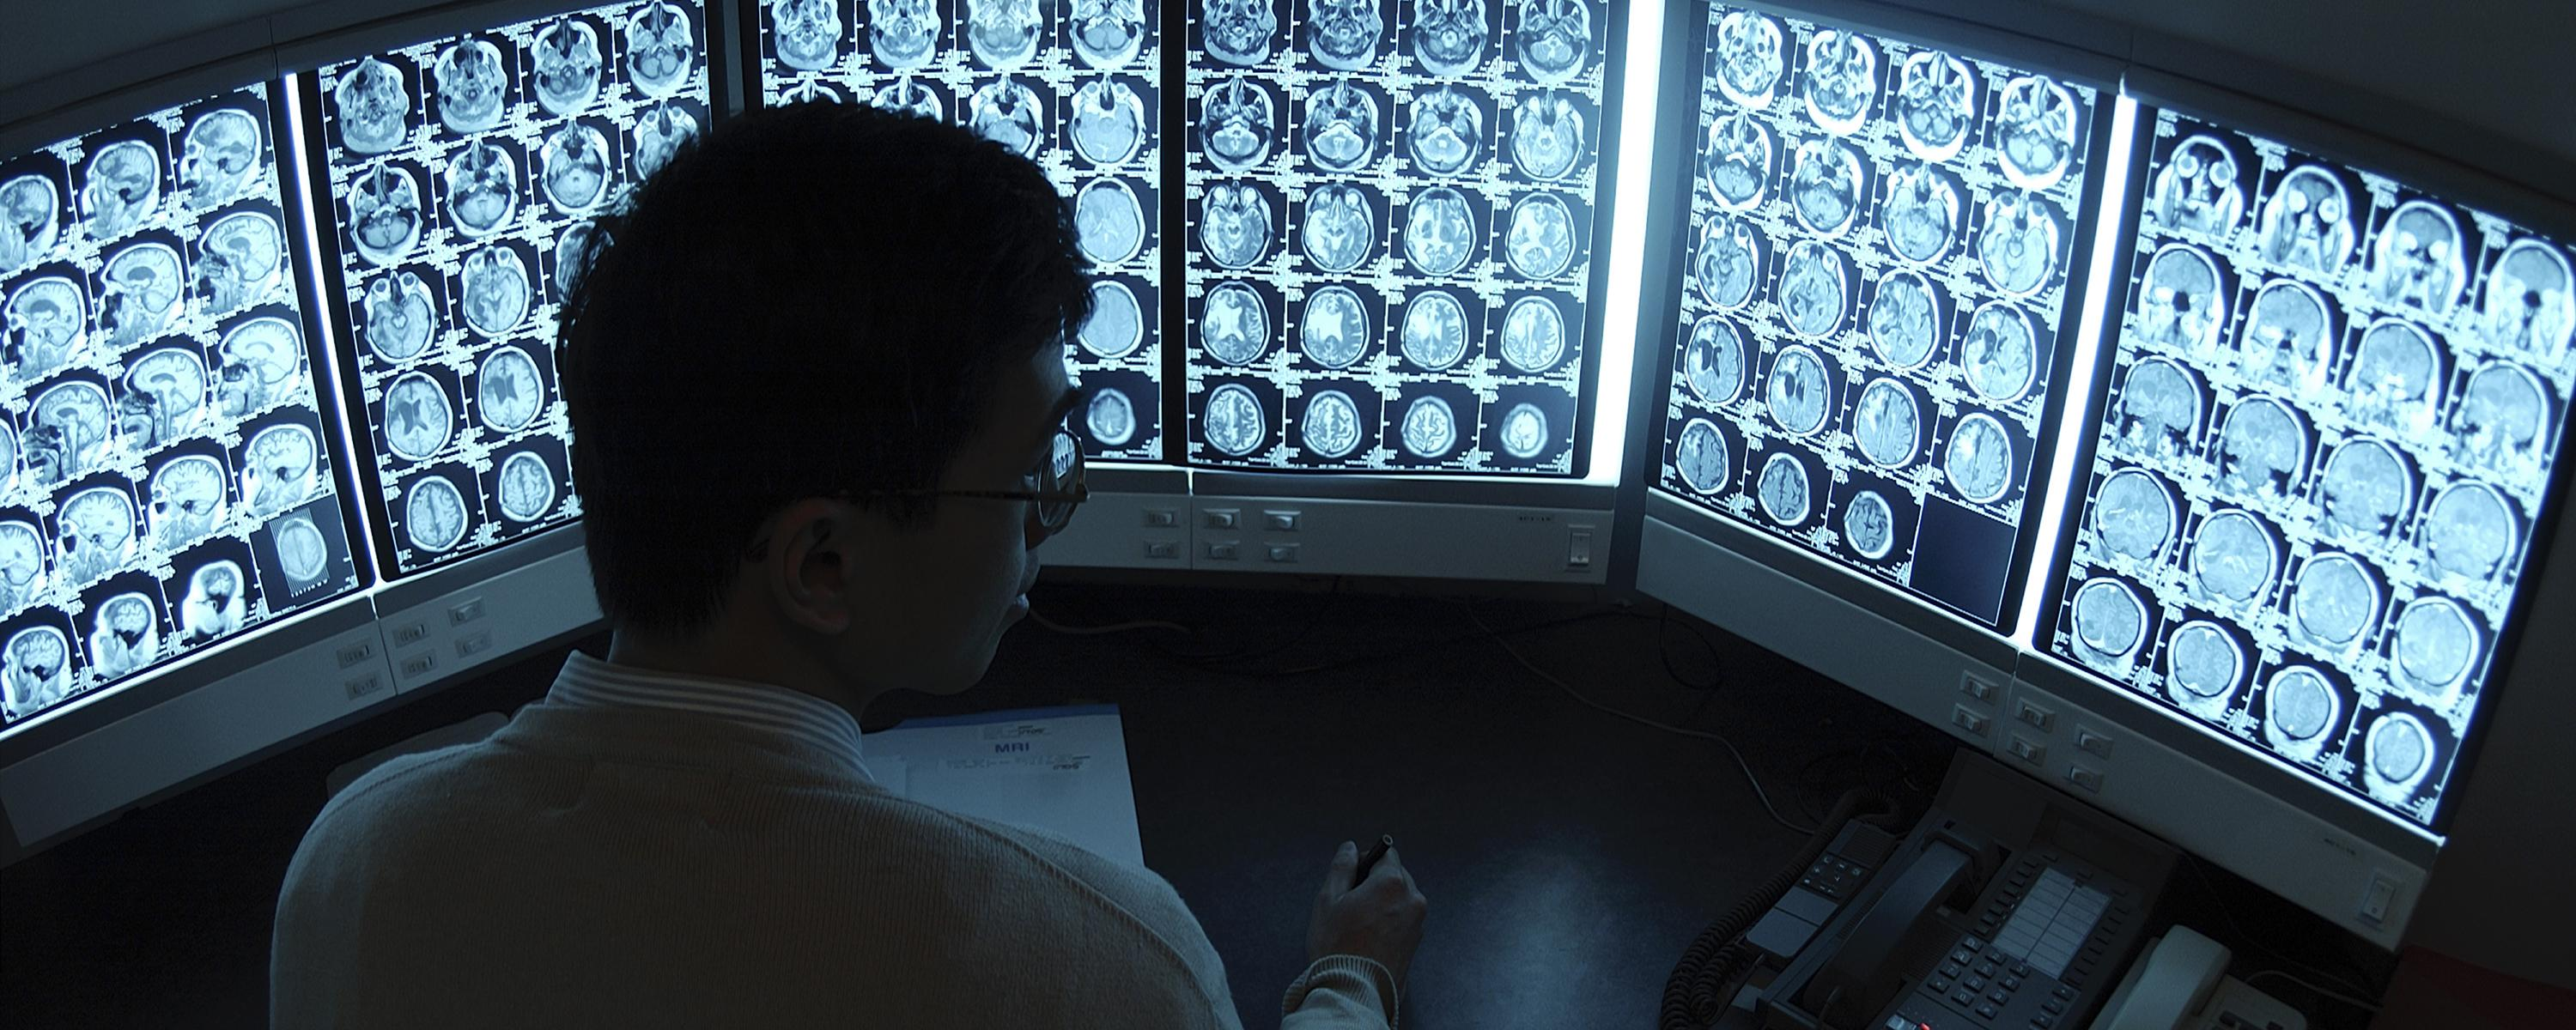 Illustrative photo of person looking at scansHealth Information Management